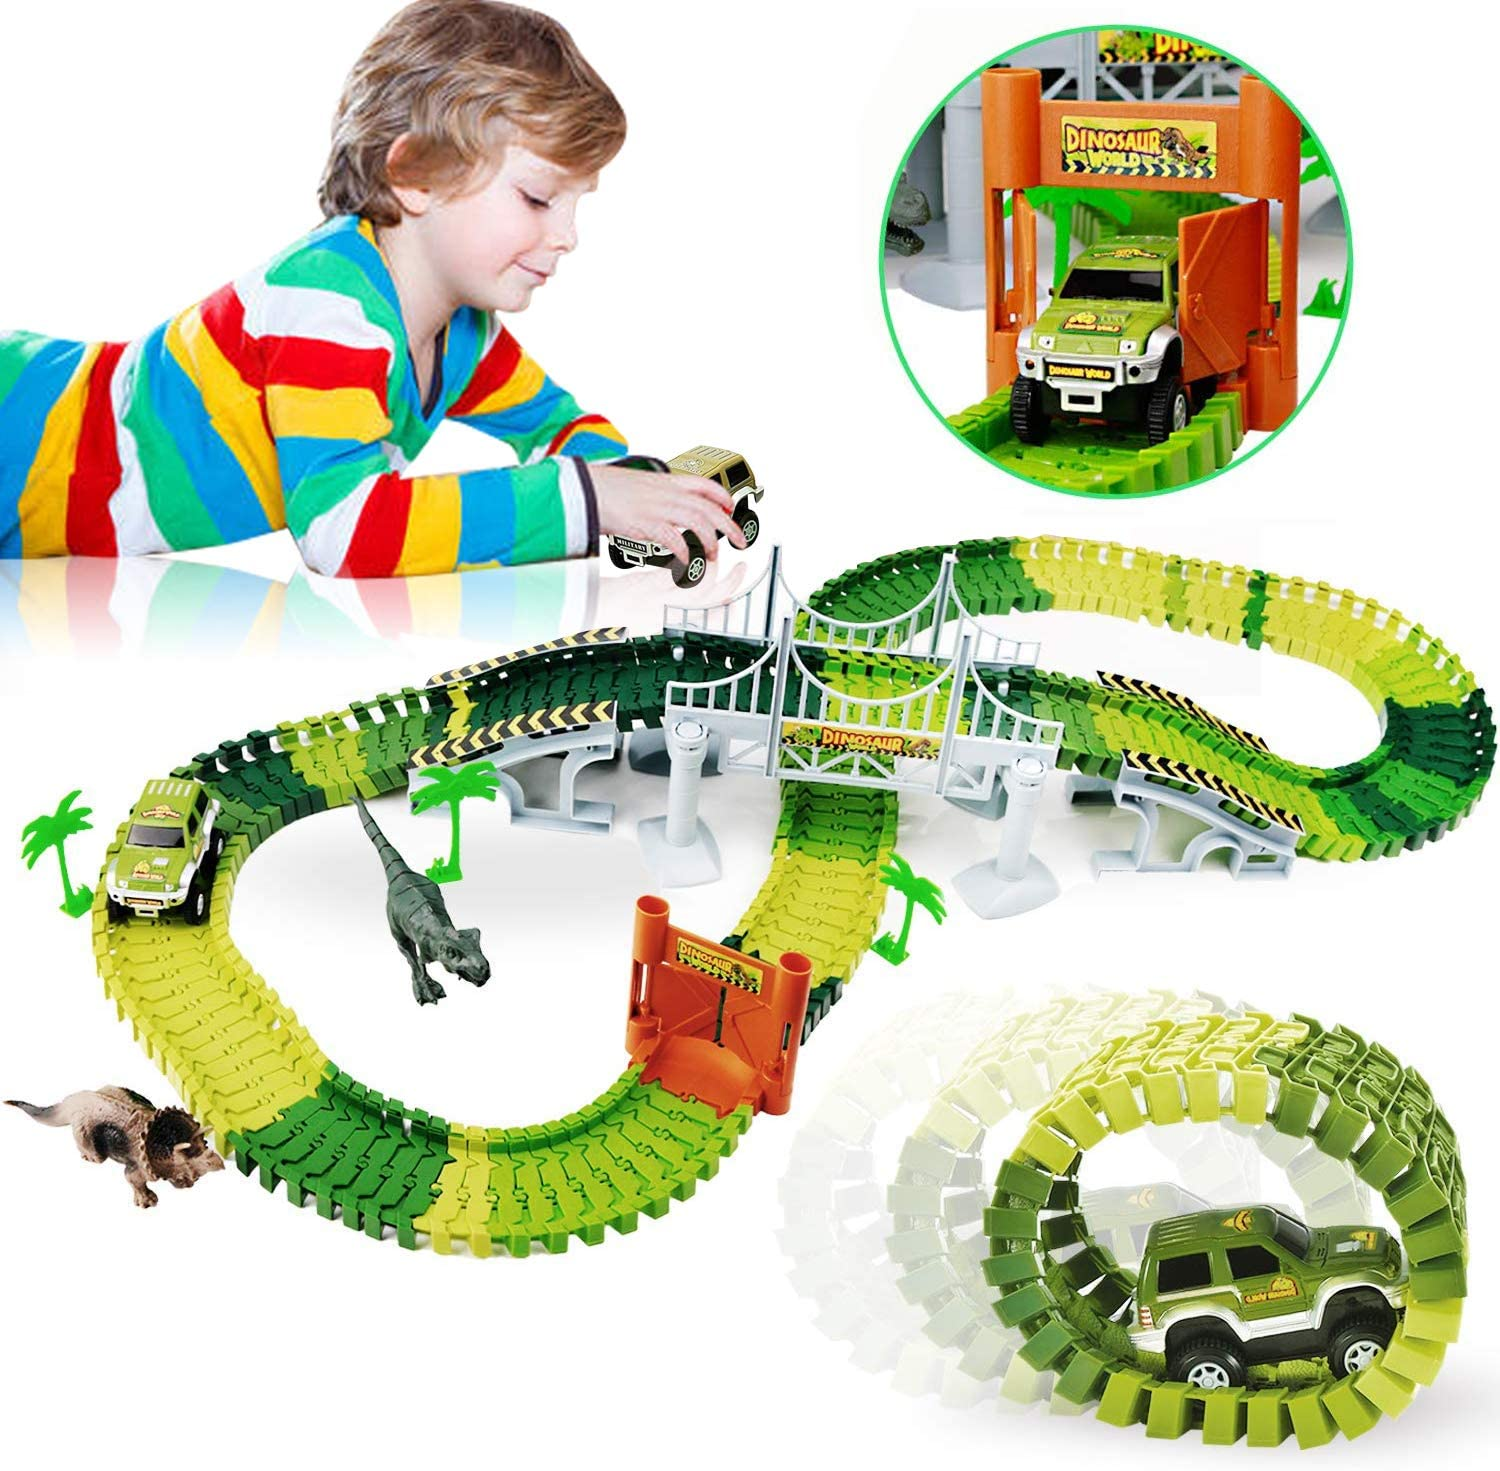 WINWONBRA Dinosaur Toys,142Pcs Race Car Flexible Track, Dinosaur Race Vehicle Track Toy Set, Dino Toys for 3 4 5 6 Years & Up Toddler Boys and Girls Toys Gifts, Girl Boy Birthday Gift